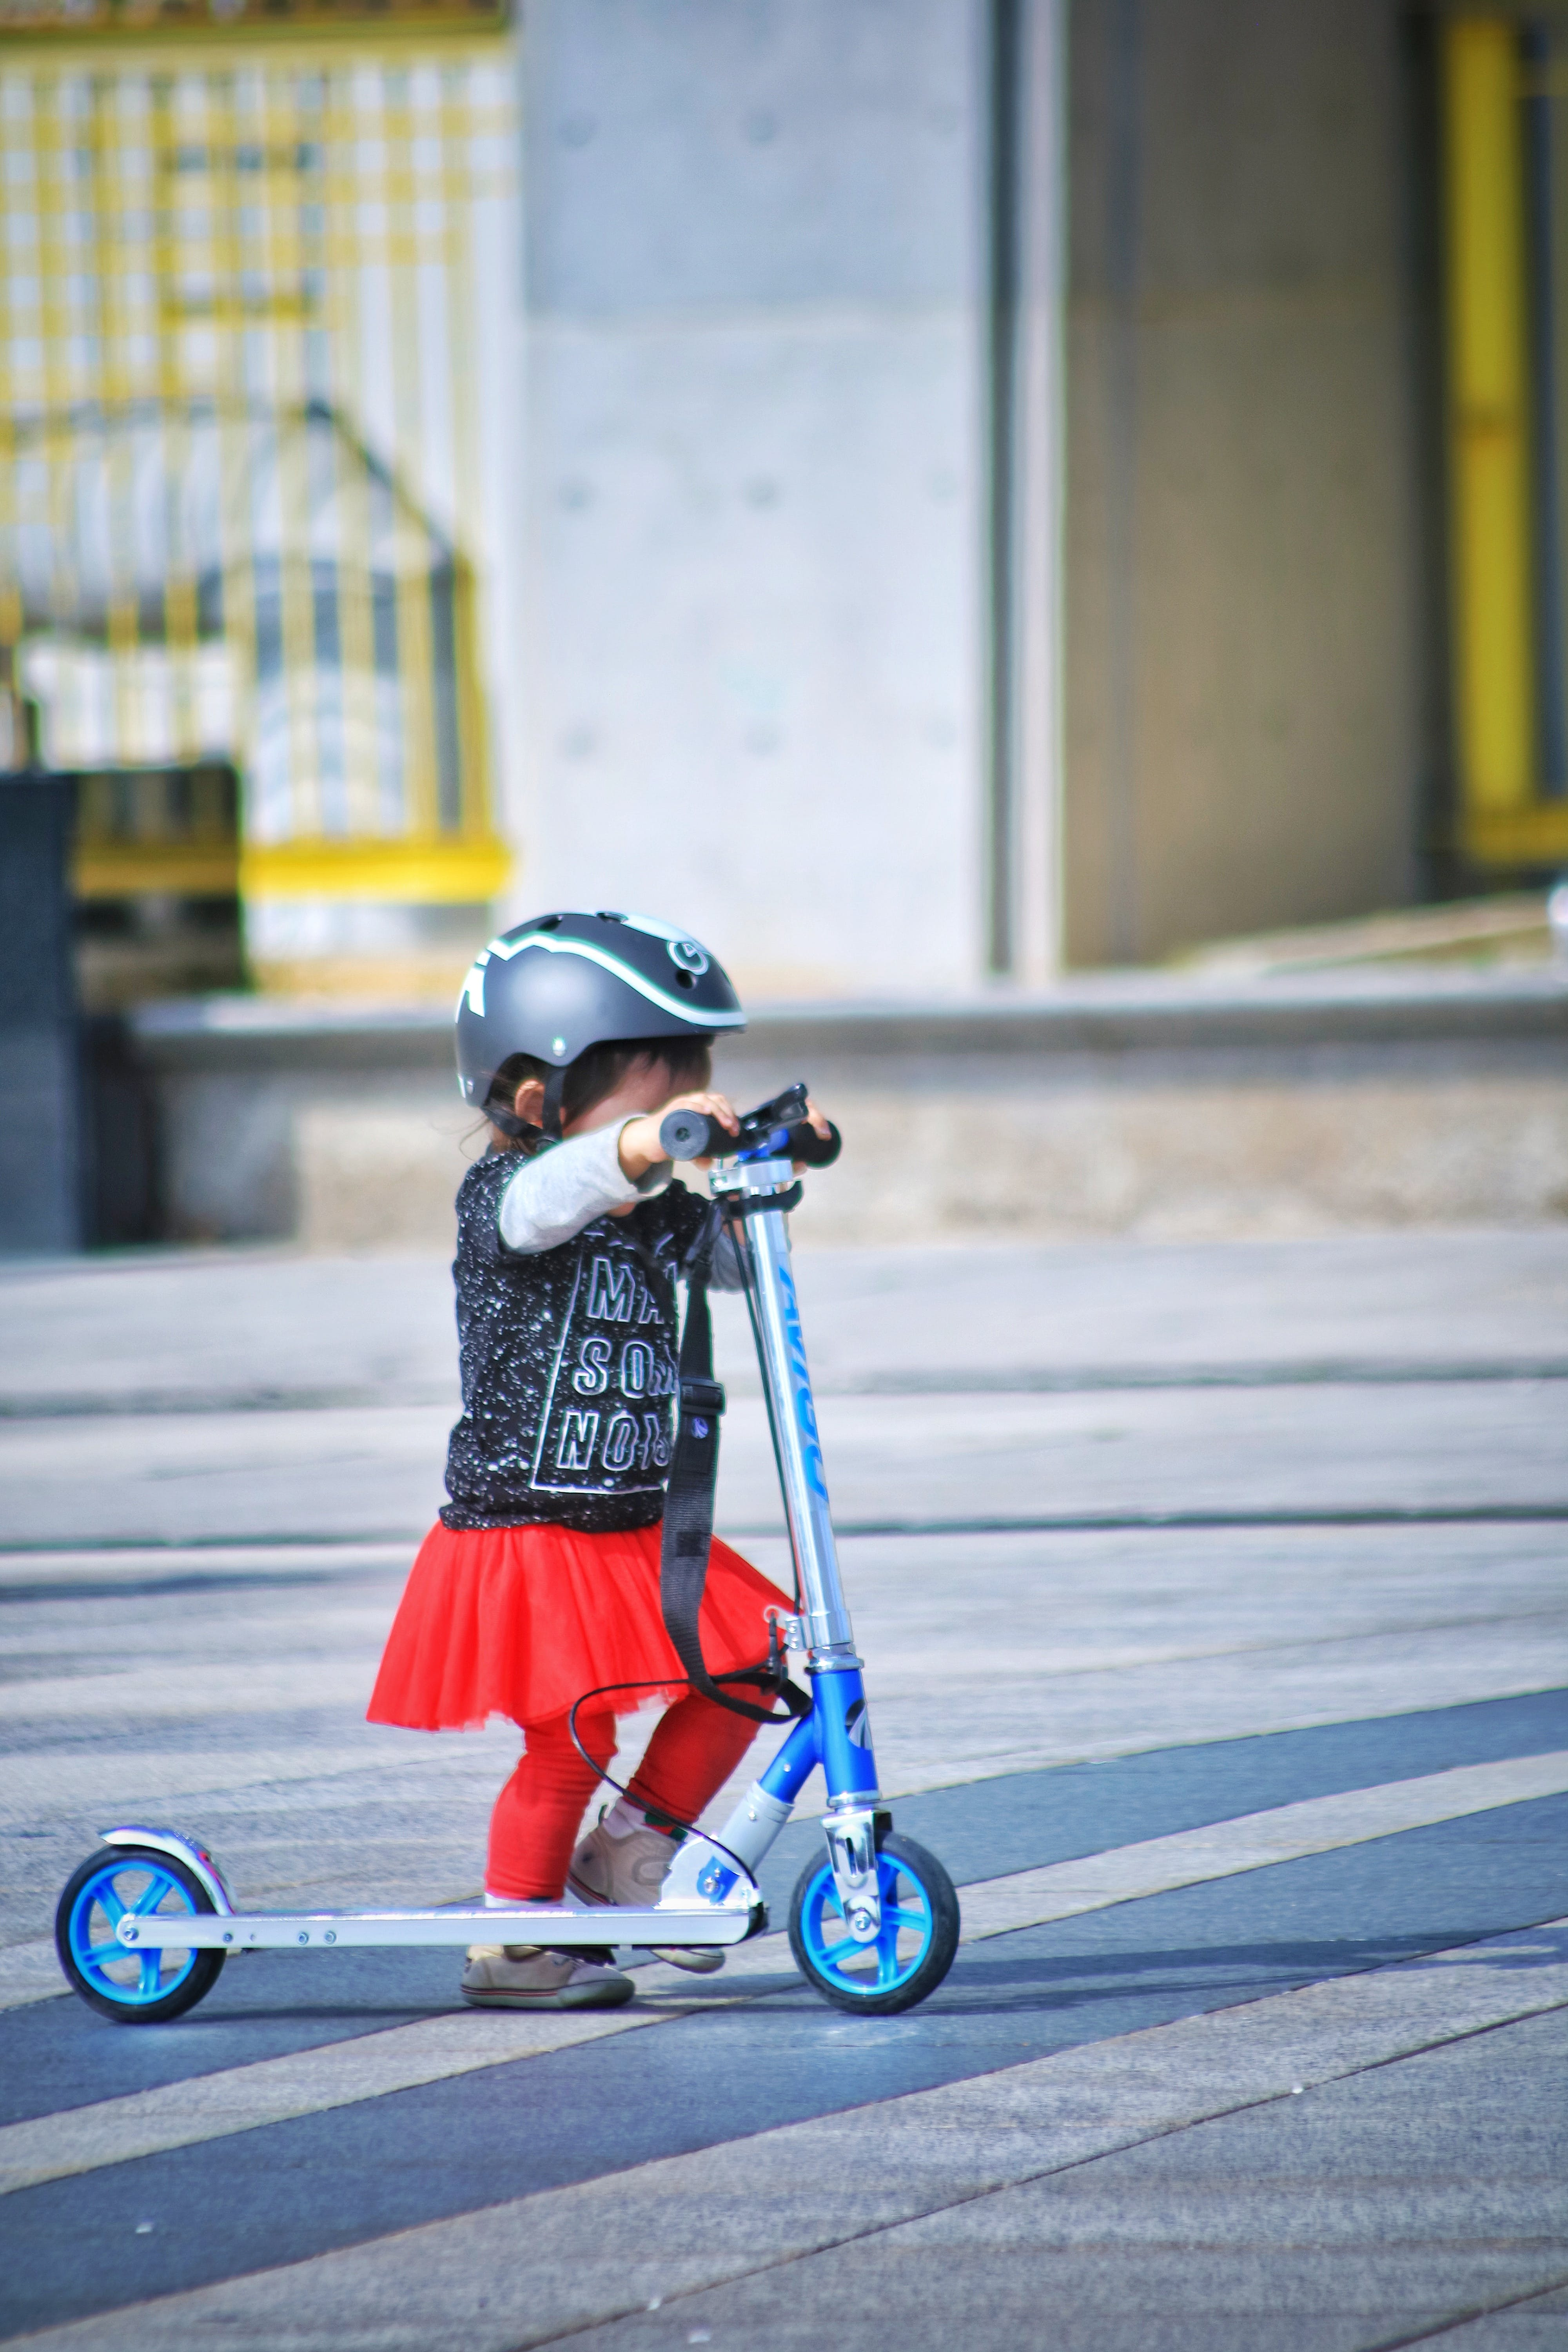 Toddler Using Scooter on Road